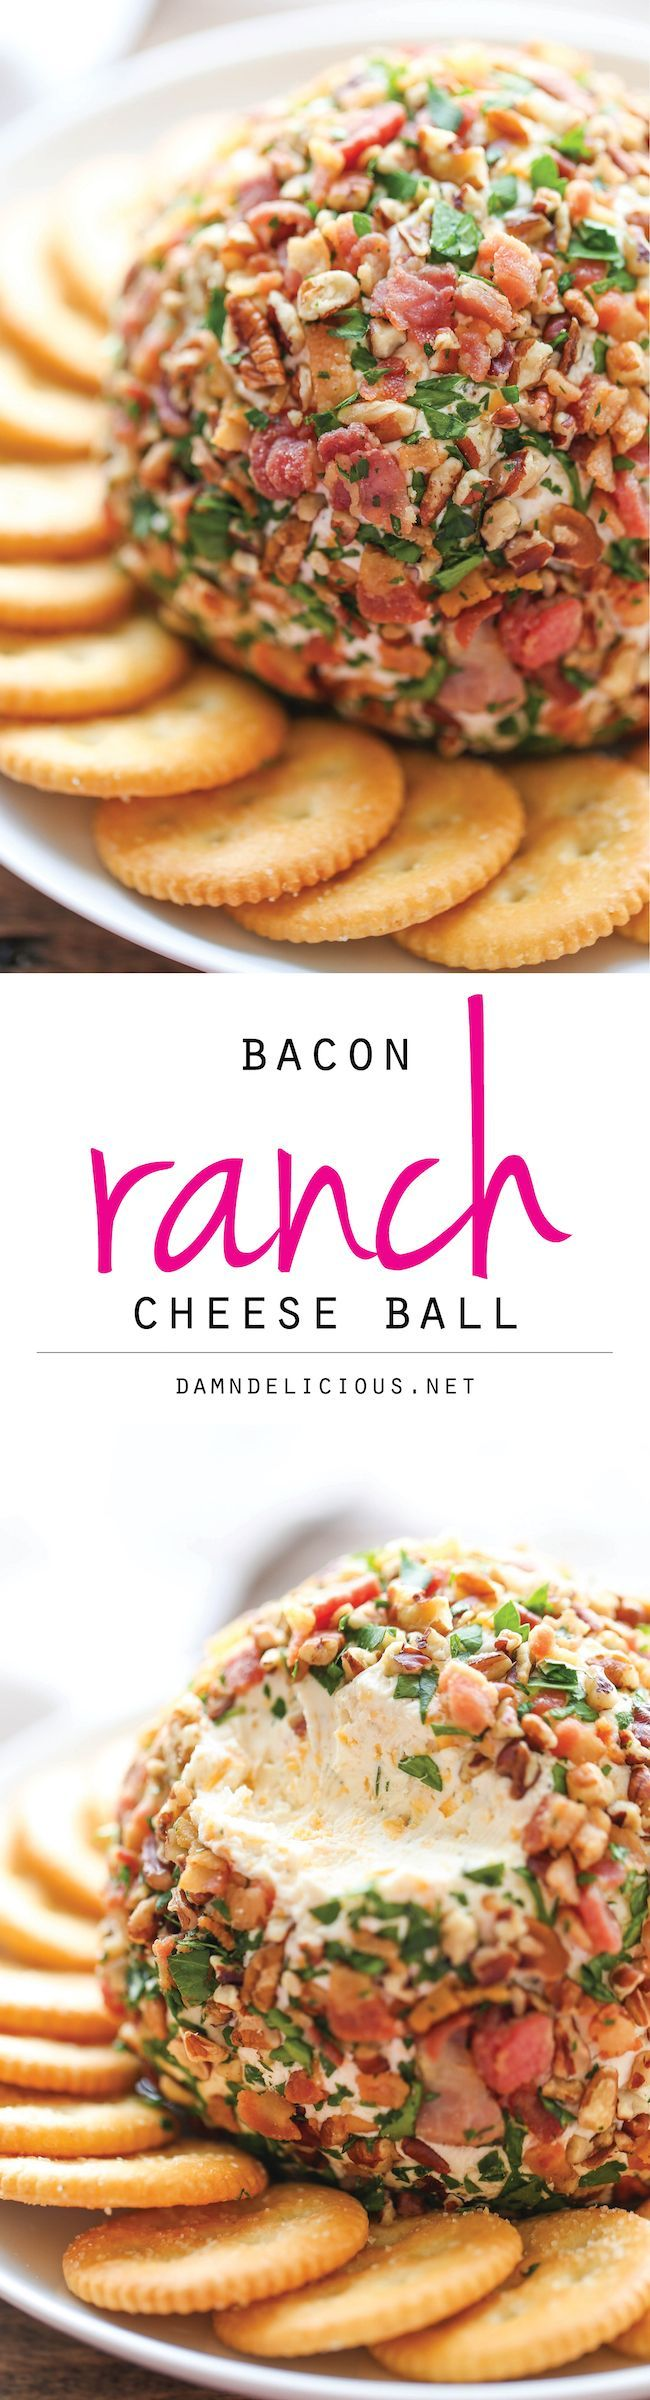 Bacon Ranch Cheese Ball - The best and easiest cheese ball that is sure to be a crowd-pleaser. You just cant go wrong with bacon and ranch together!